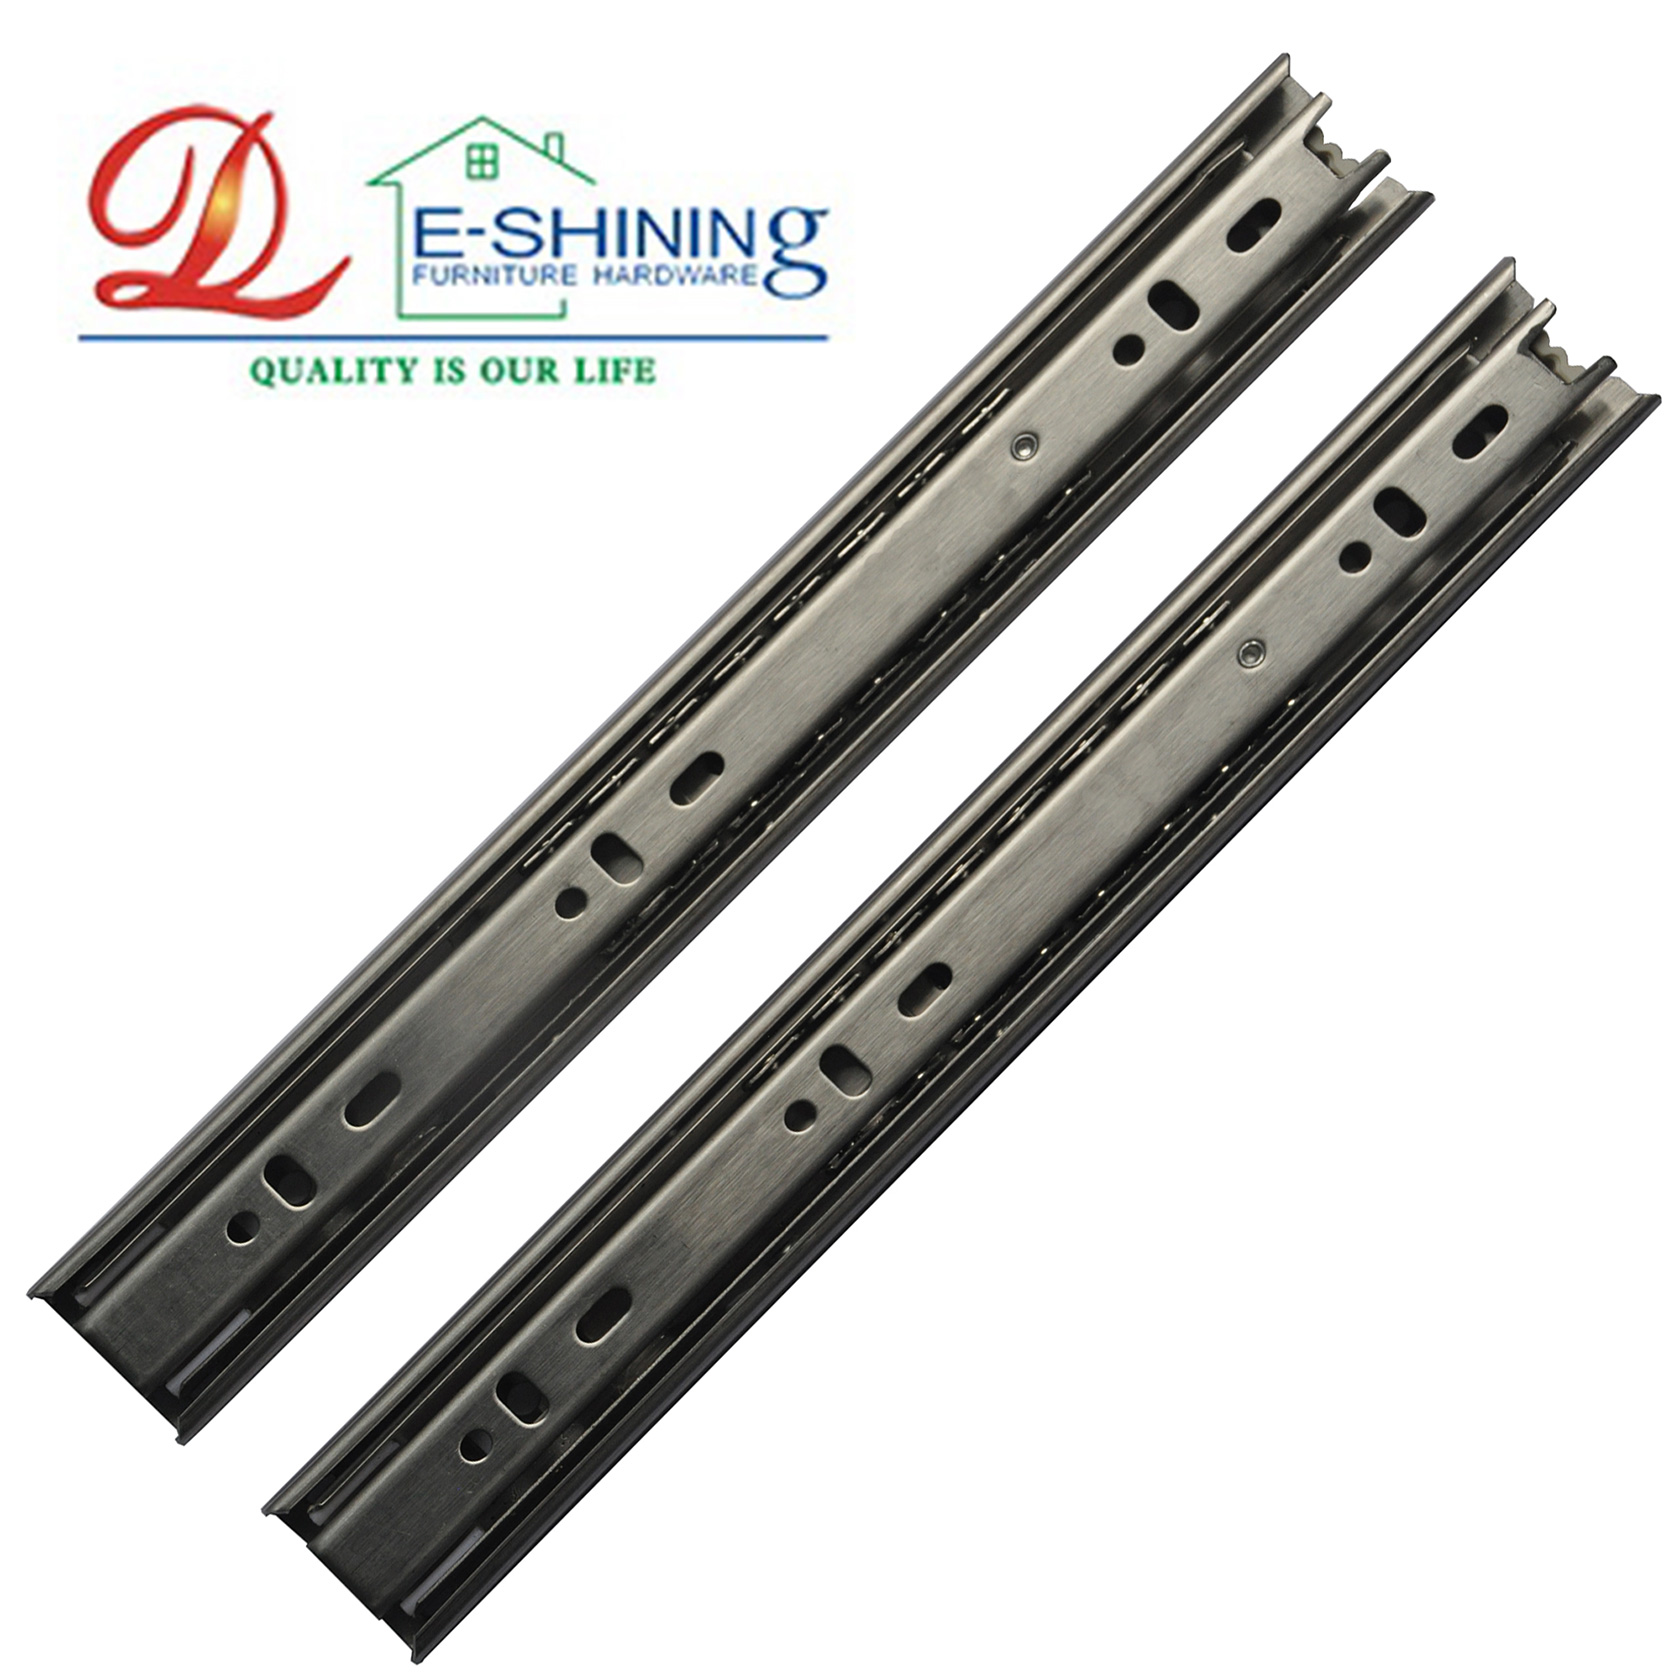 Full extension 35MM width stainless steel ball bearing drawer slide